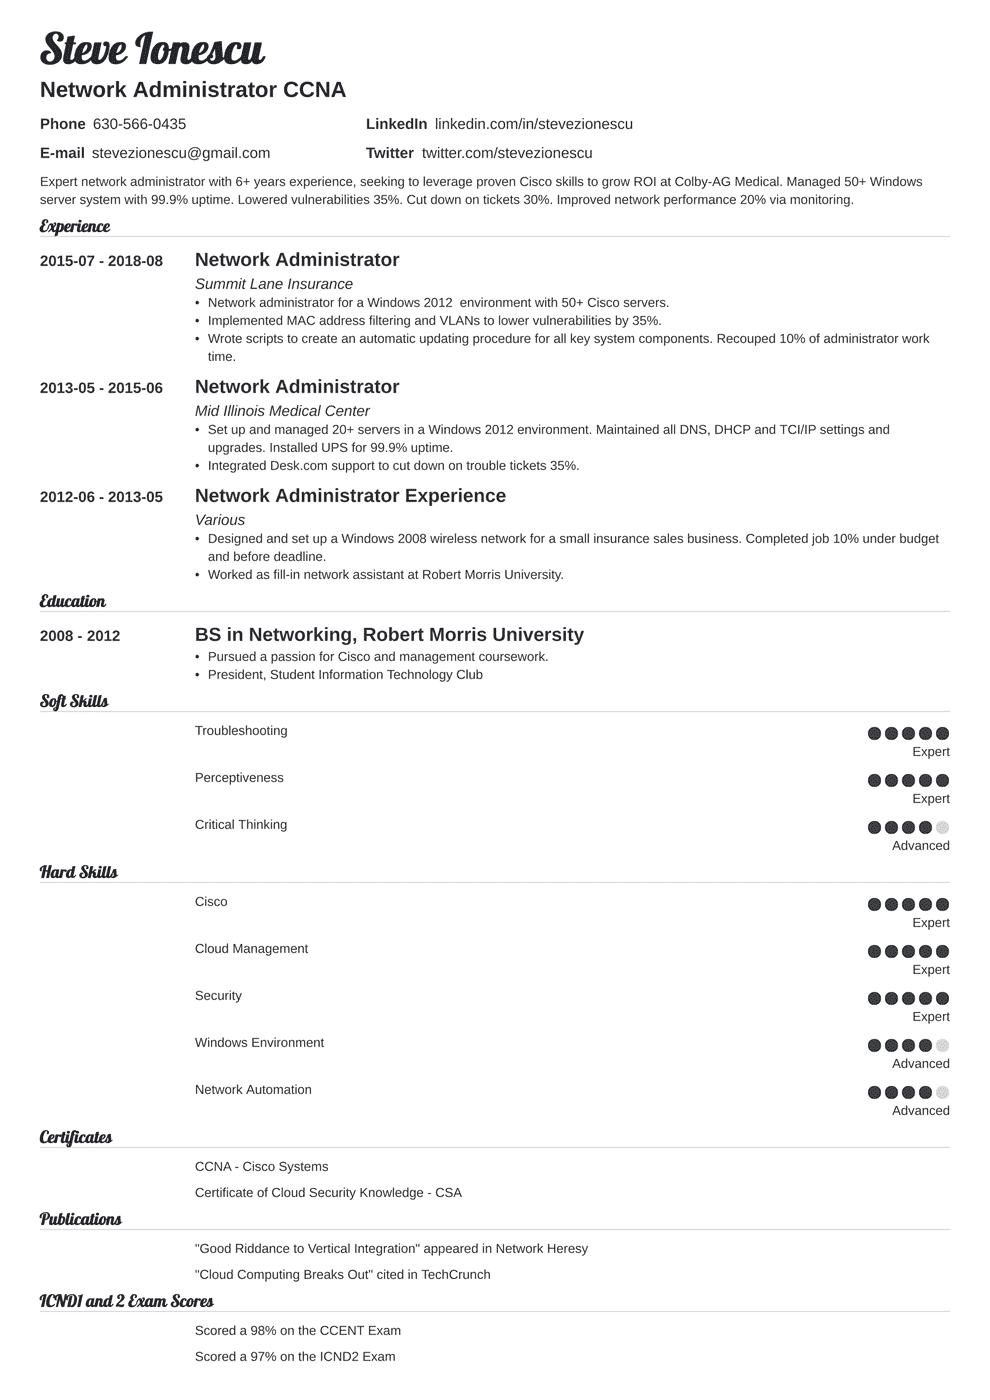 network administrator resume sample with skills  tips